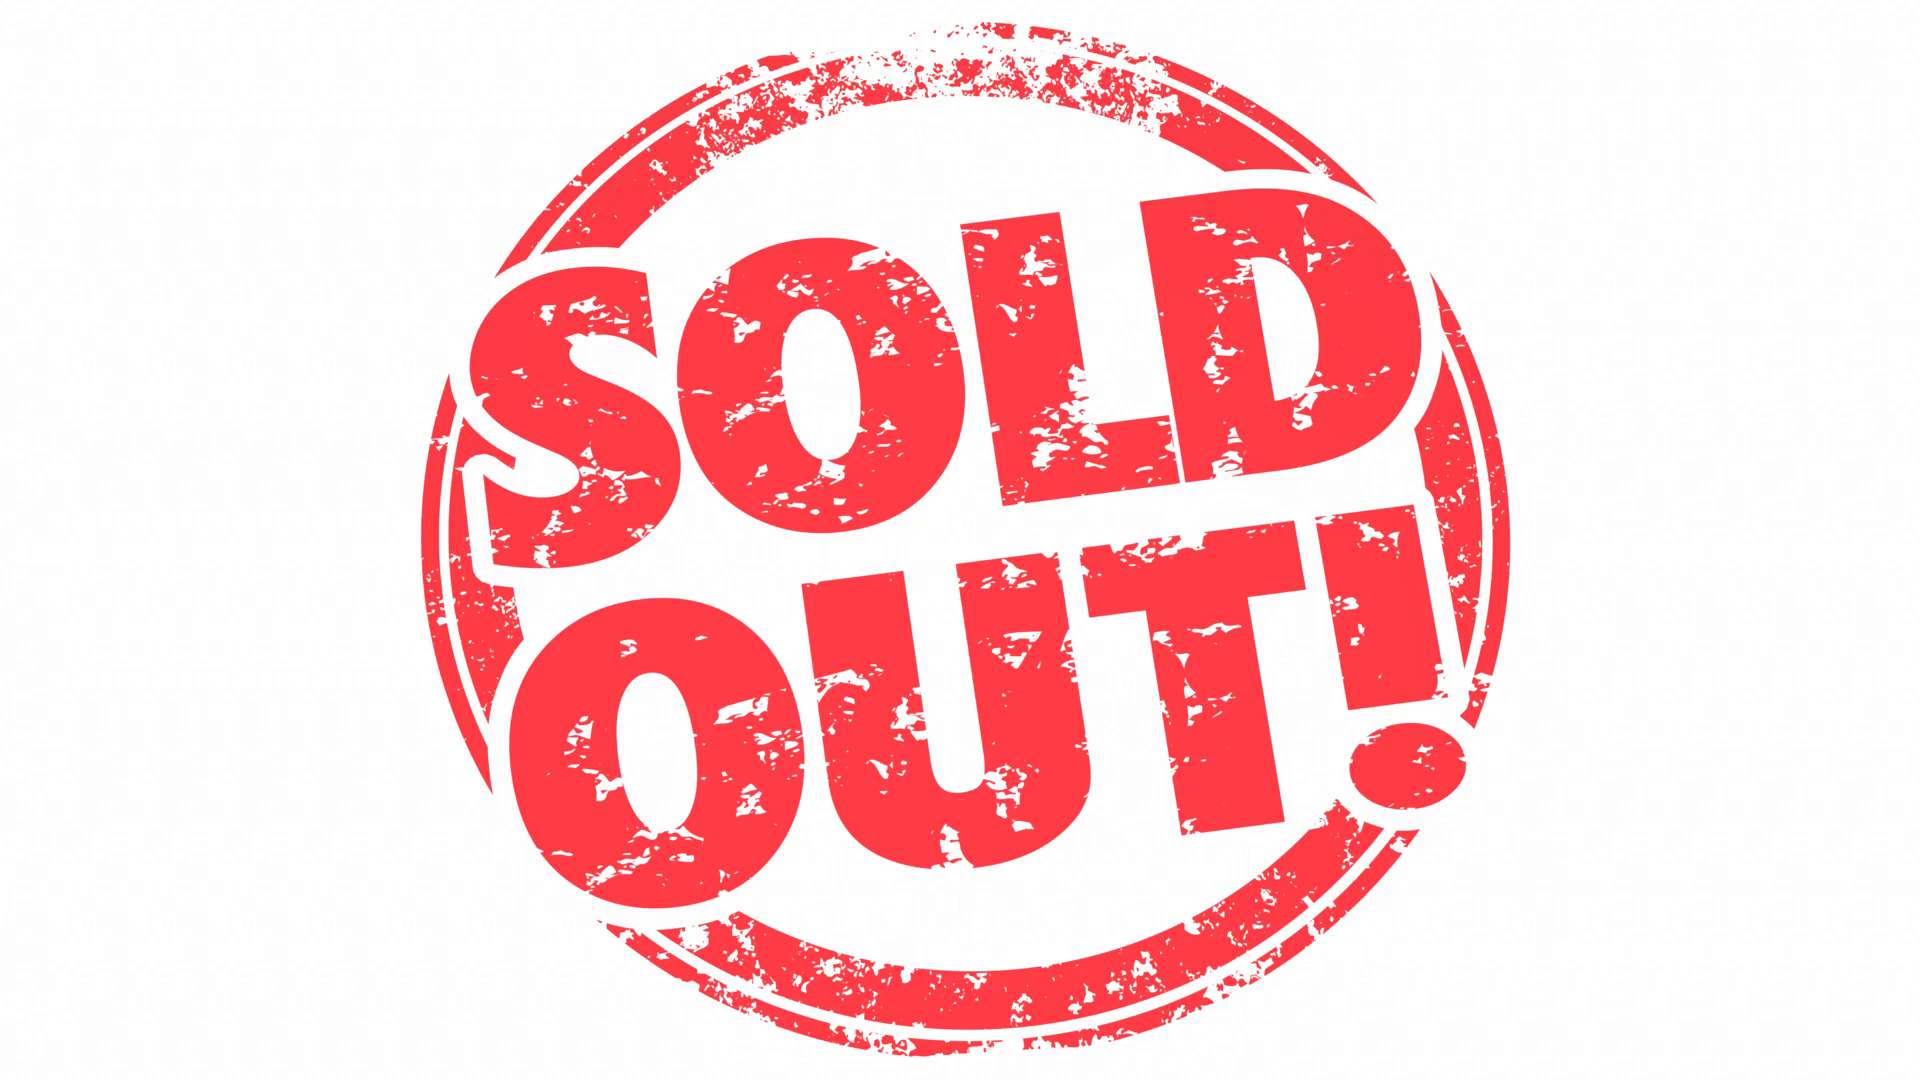 sold-out-product-sellout-inventory-gone-stamp-3d-animation_s-1n4tlu__F0014.png